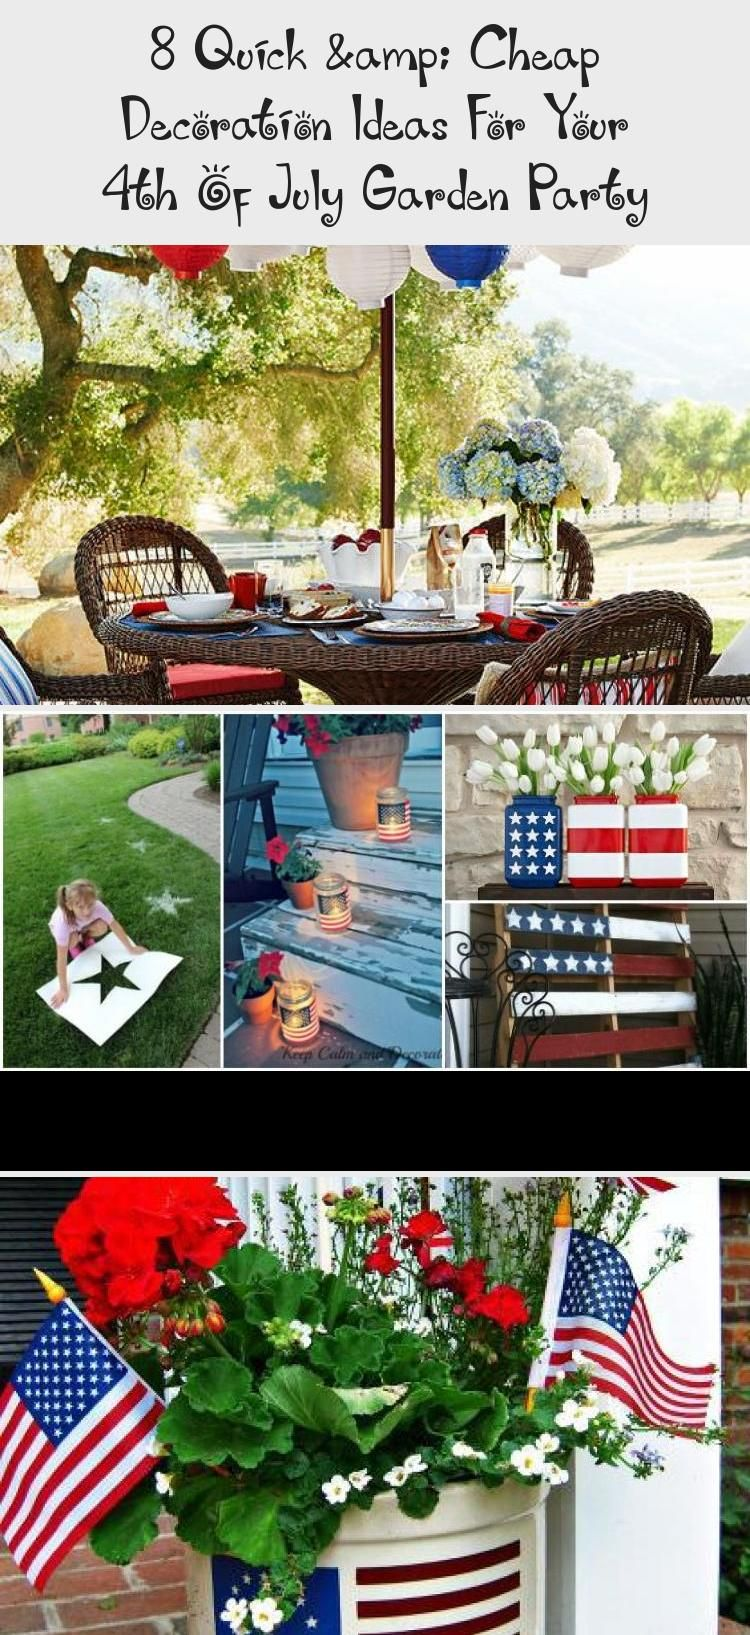 8 Quick Cheap Decoration Ideas For Your 4th Of July Garden Party Garden Decor Summerdecorstringlights Summerdeco Cheap Decor Summer Decor Homemade Stencils